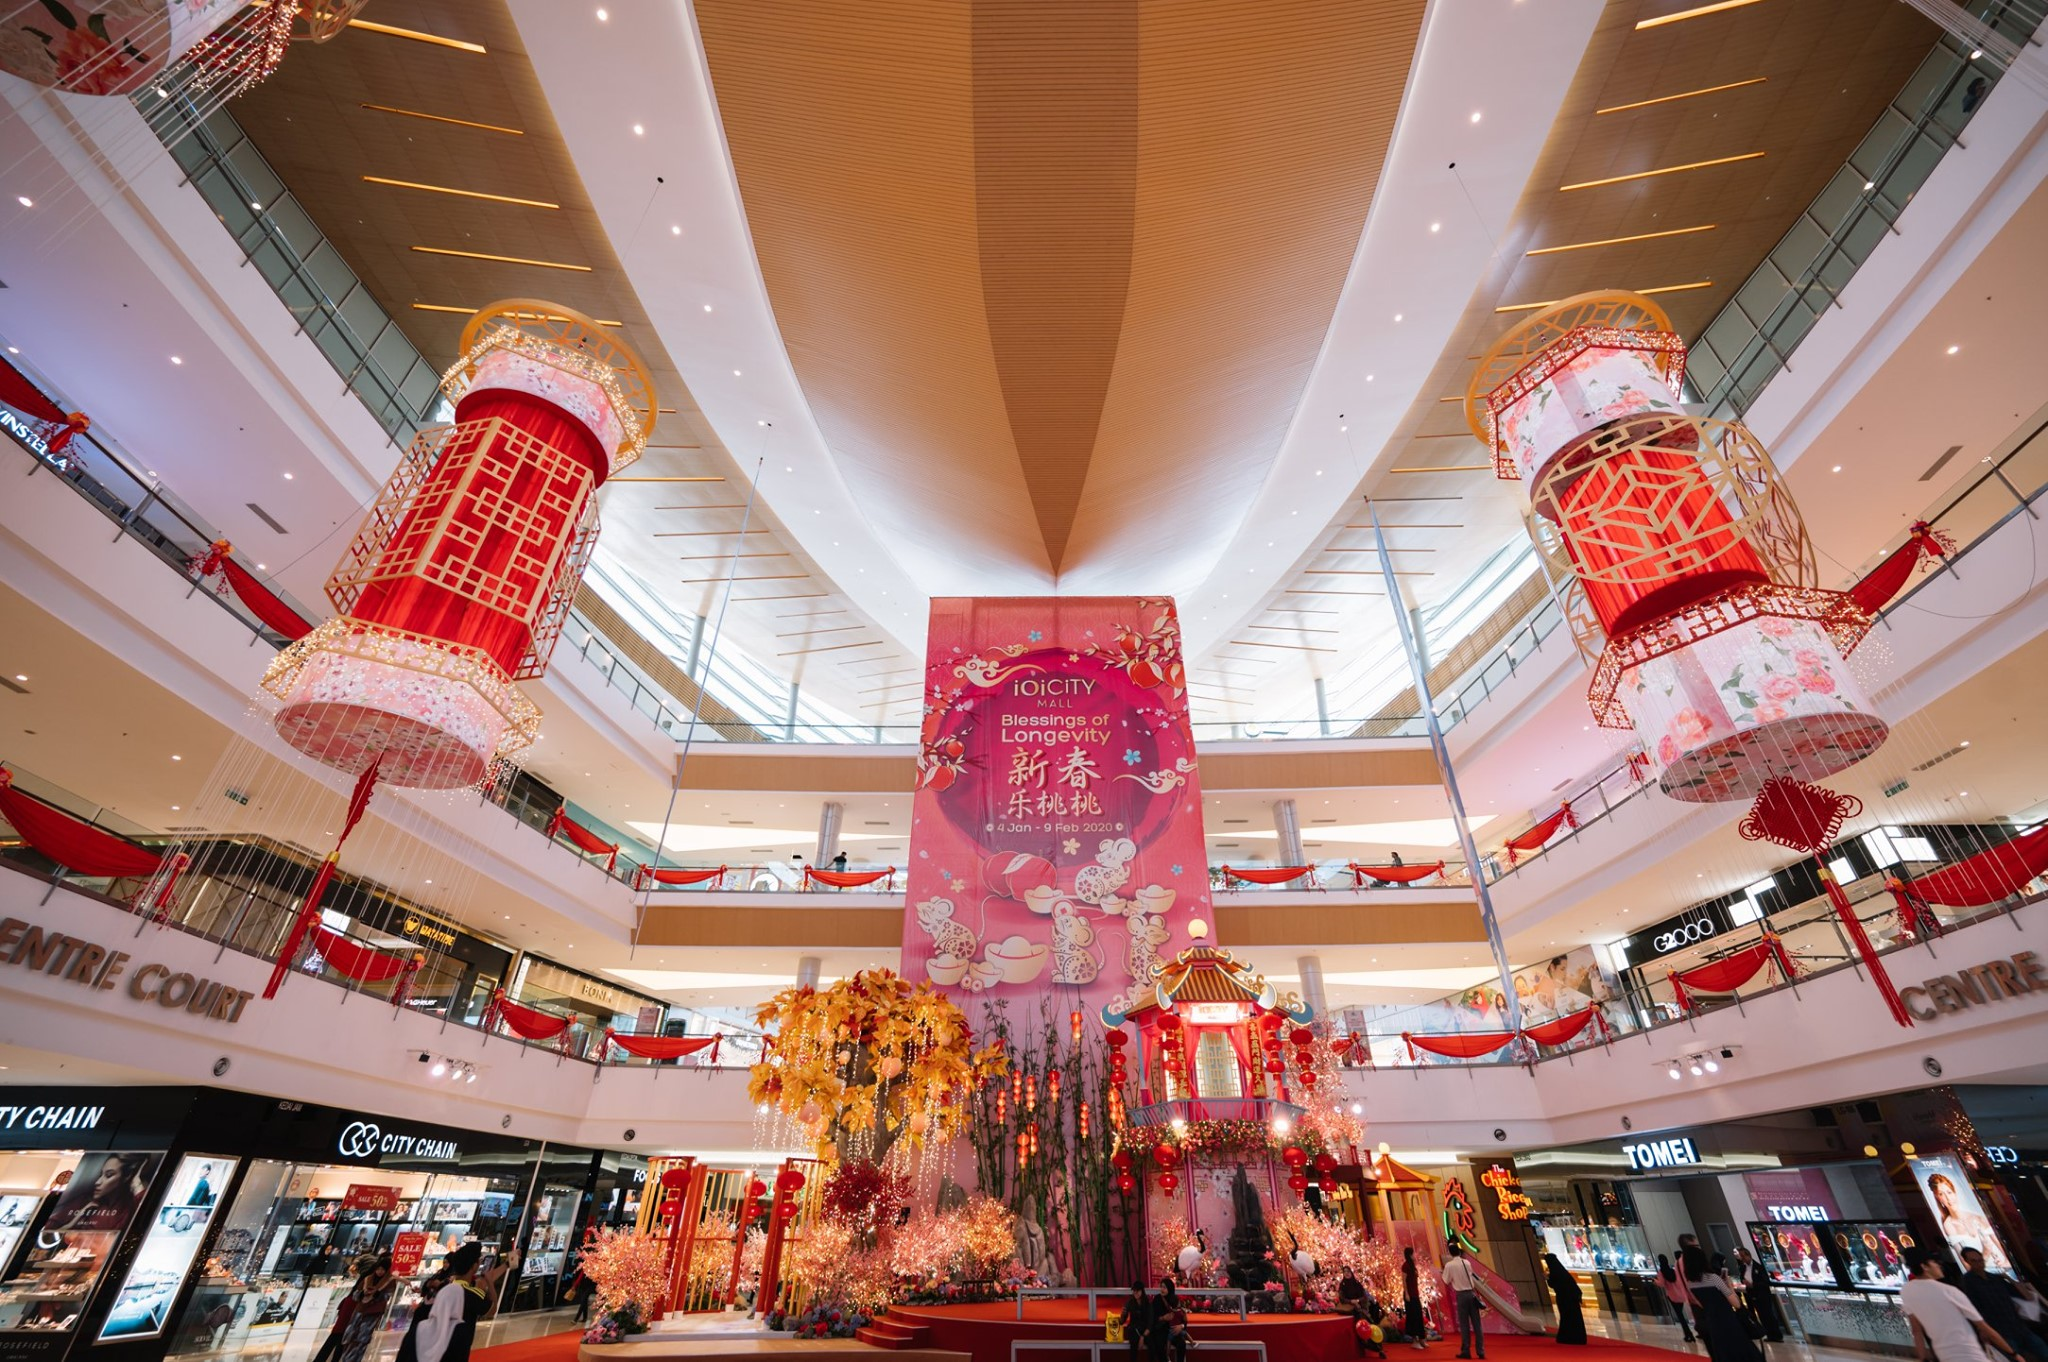 Image from IOI City Mall/Facebook